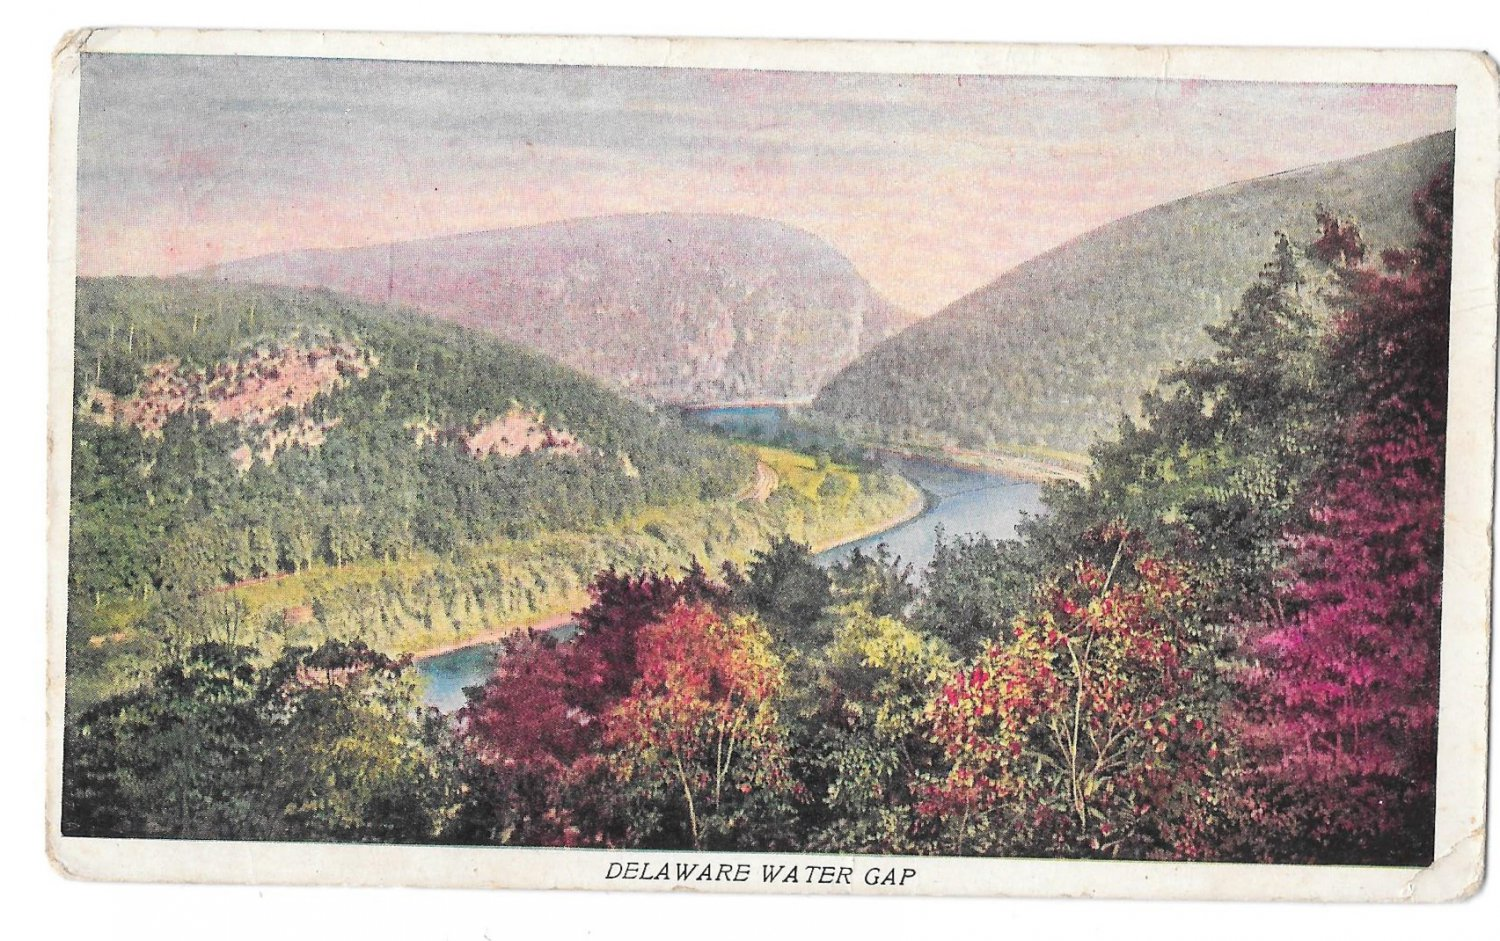 delaware water gap lesbian personals Delaware water gap national recreation area superintendent john j donahue announced today that pavement improvements will be in progress on river road beginning sept 21, 2015 the project.